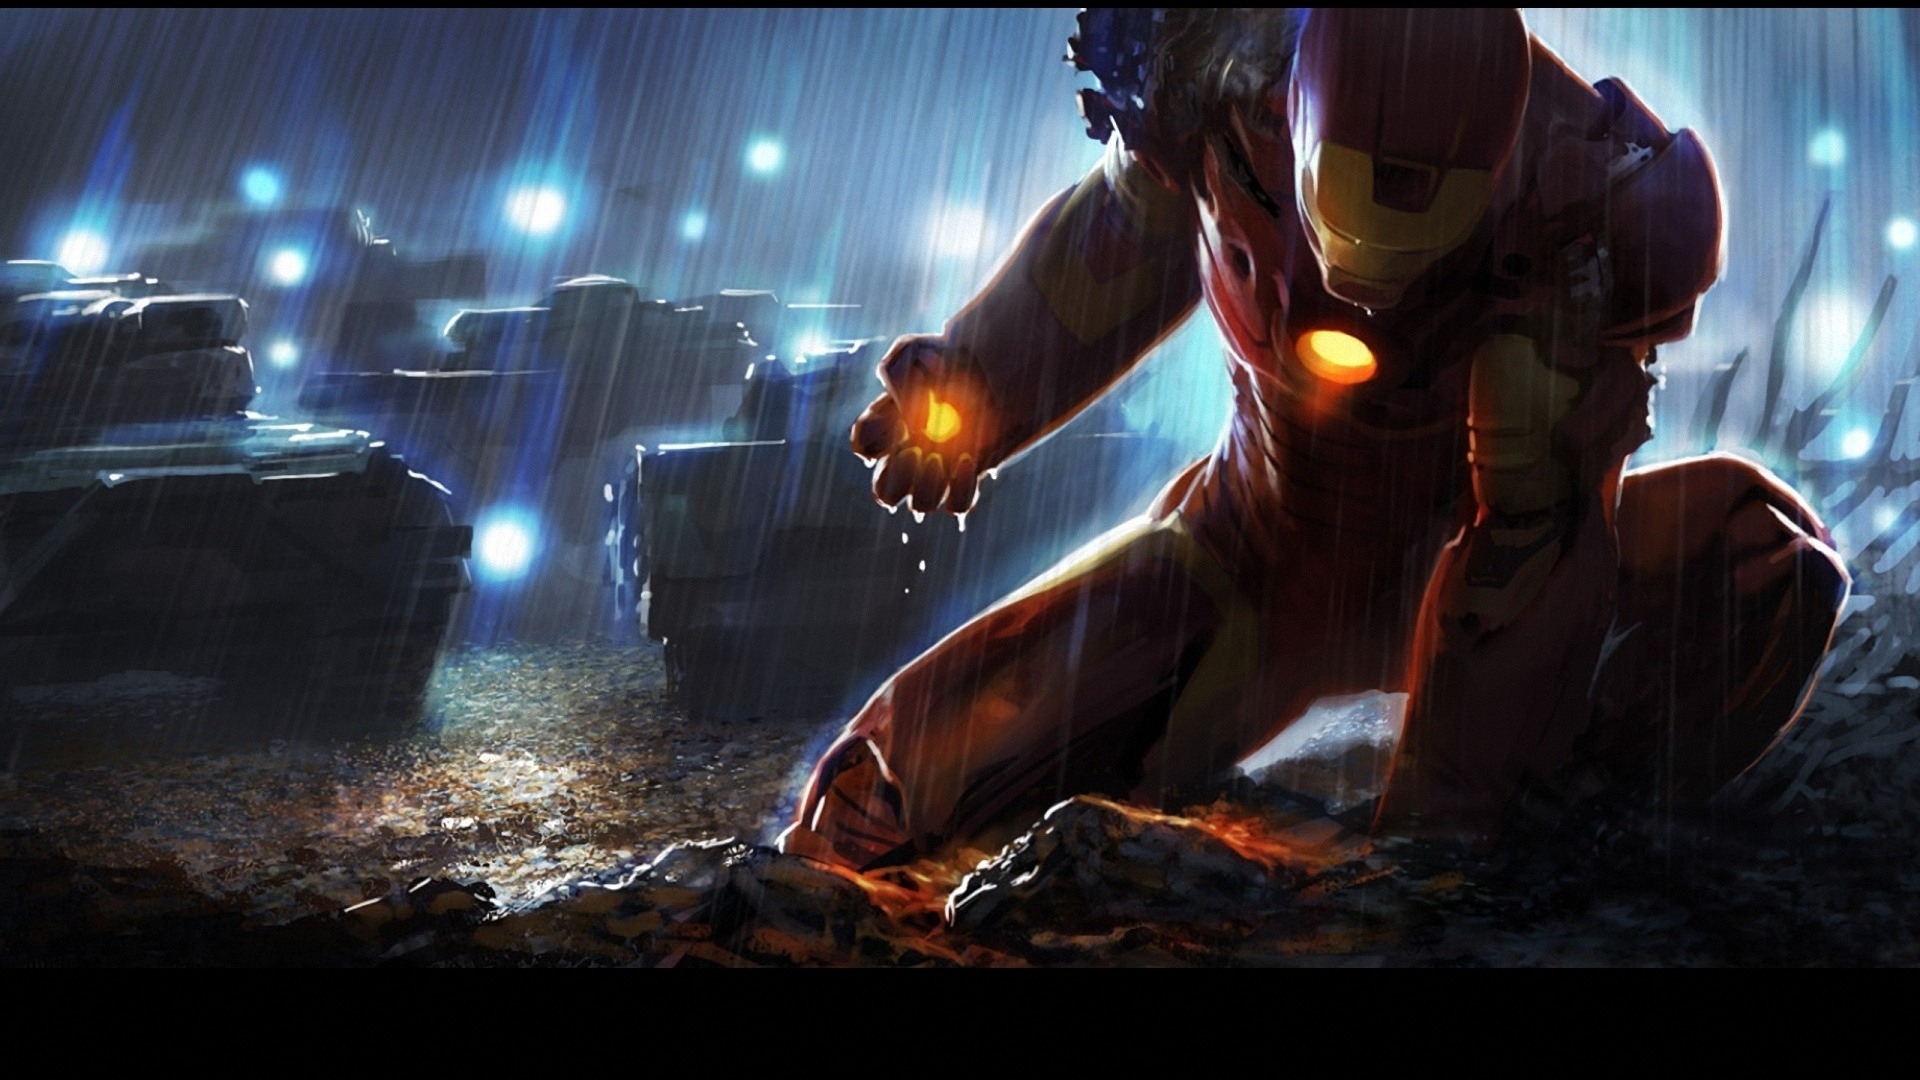 iron man best htc one wallpapers | hd wallpapers | pinterest | hd